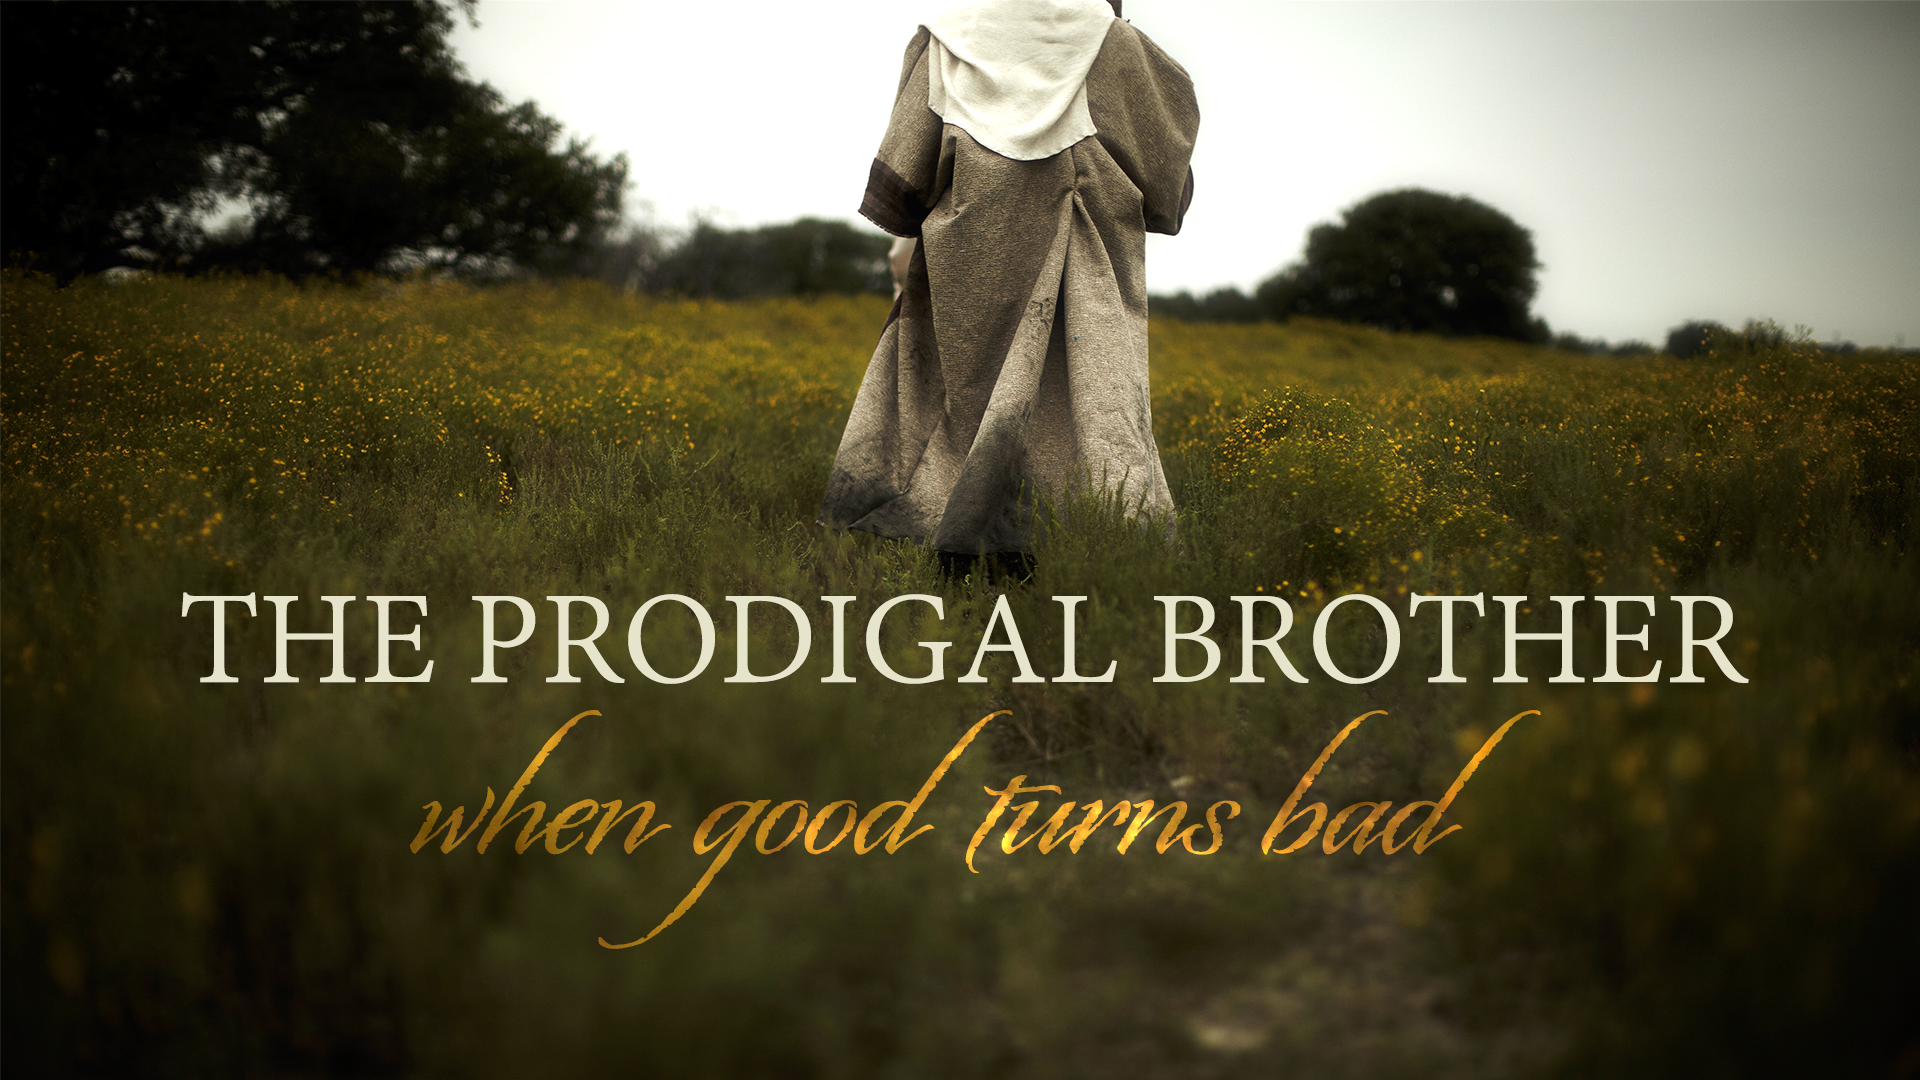 The Prodigal Brother: When Good Turns Bad